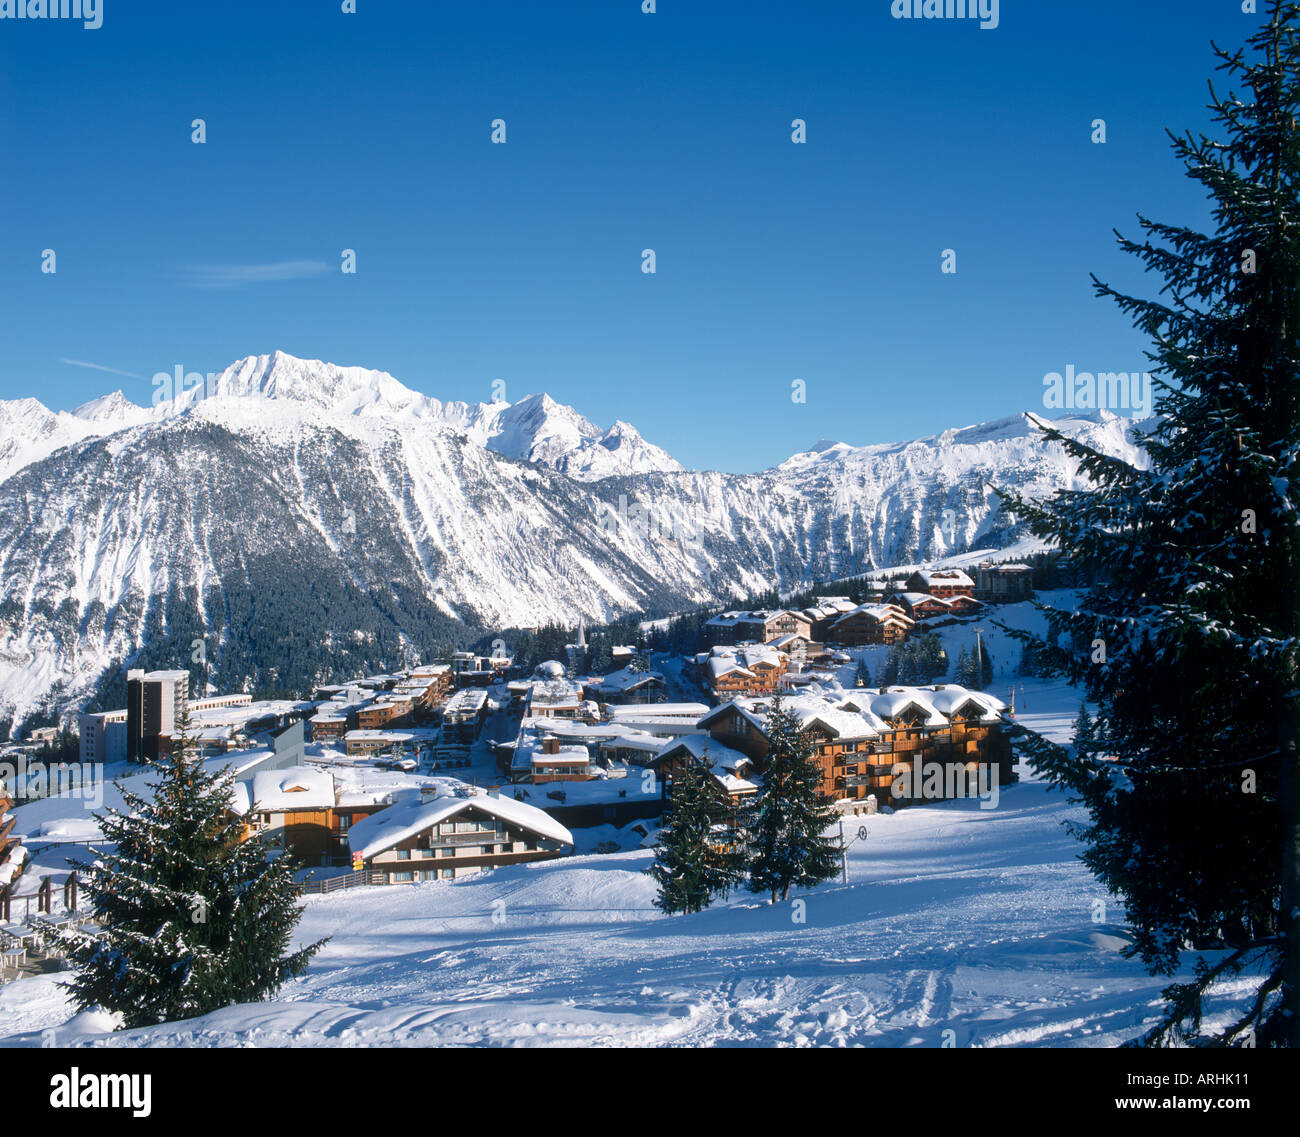 View over the resort centre, Courchevel 1850, Three Valleys, Savoie, French Alps, France Stock Photo